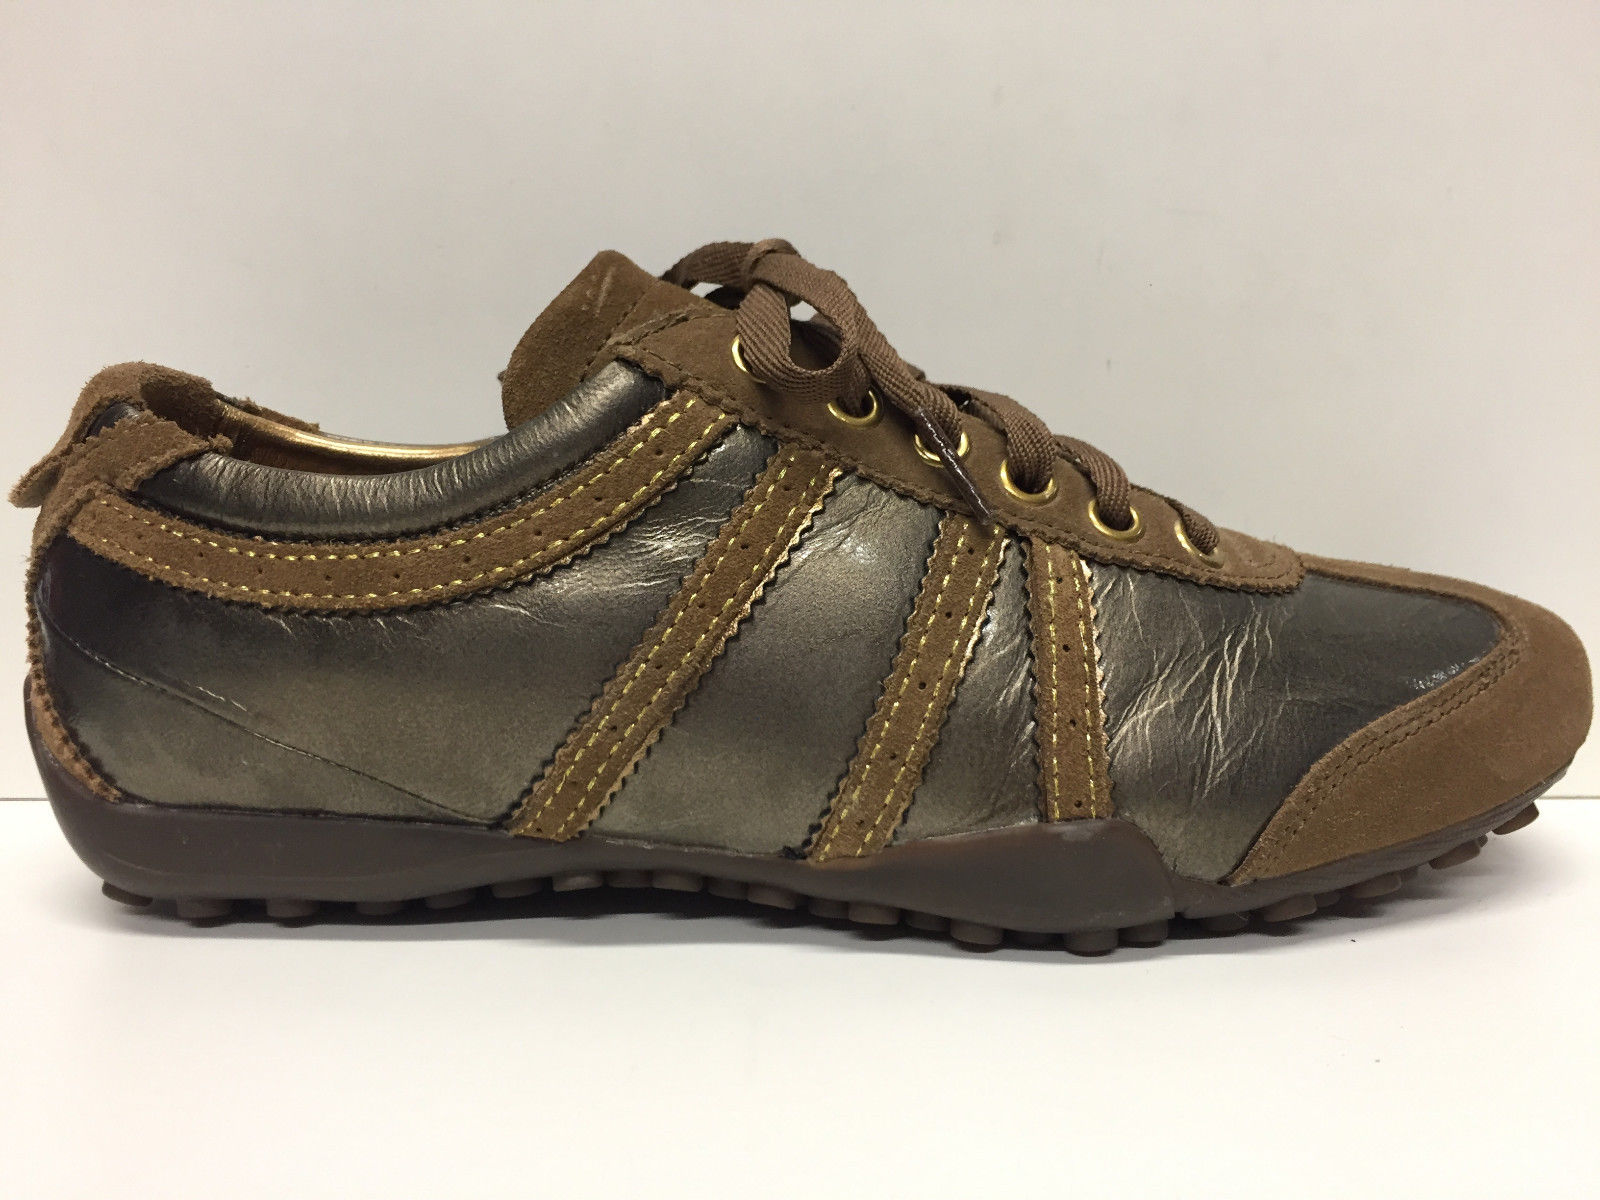 SCARPE CASUAL DONNA GEOX ORIGINAL SNAKE D8312H PELLE SHOES LEATHER WOMAN A/I NEW